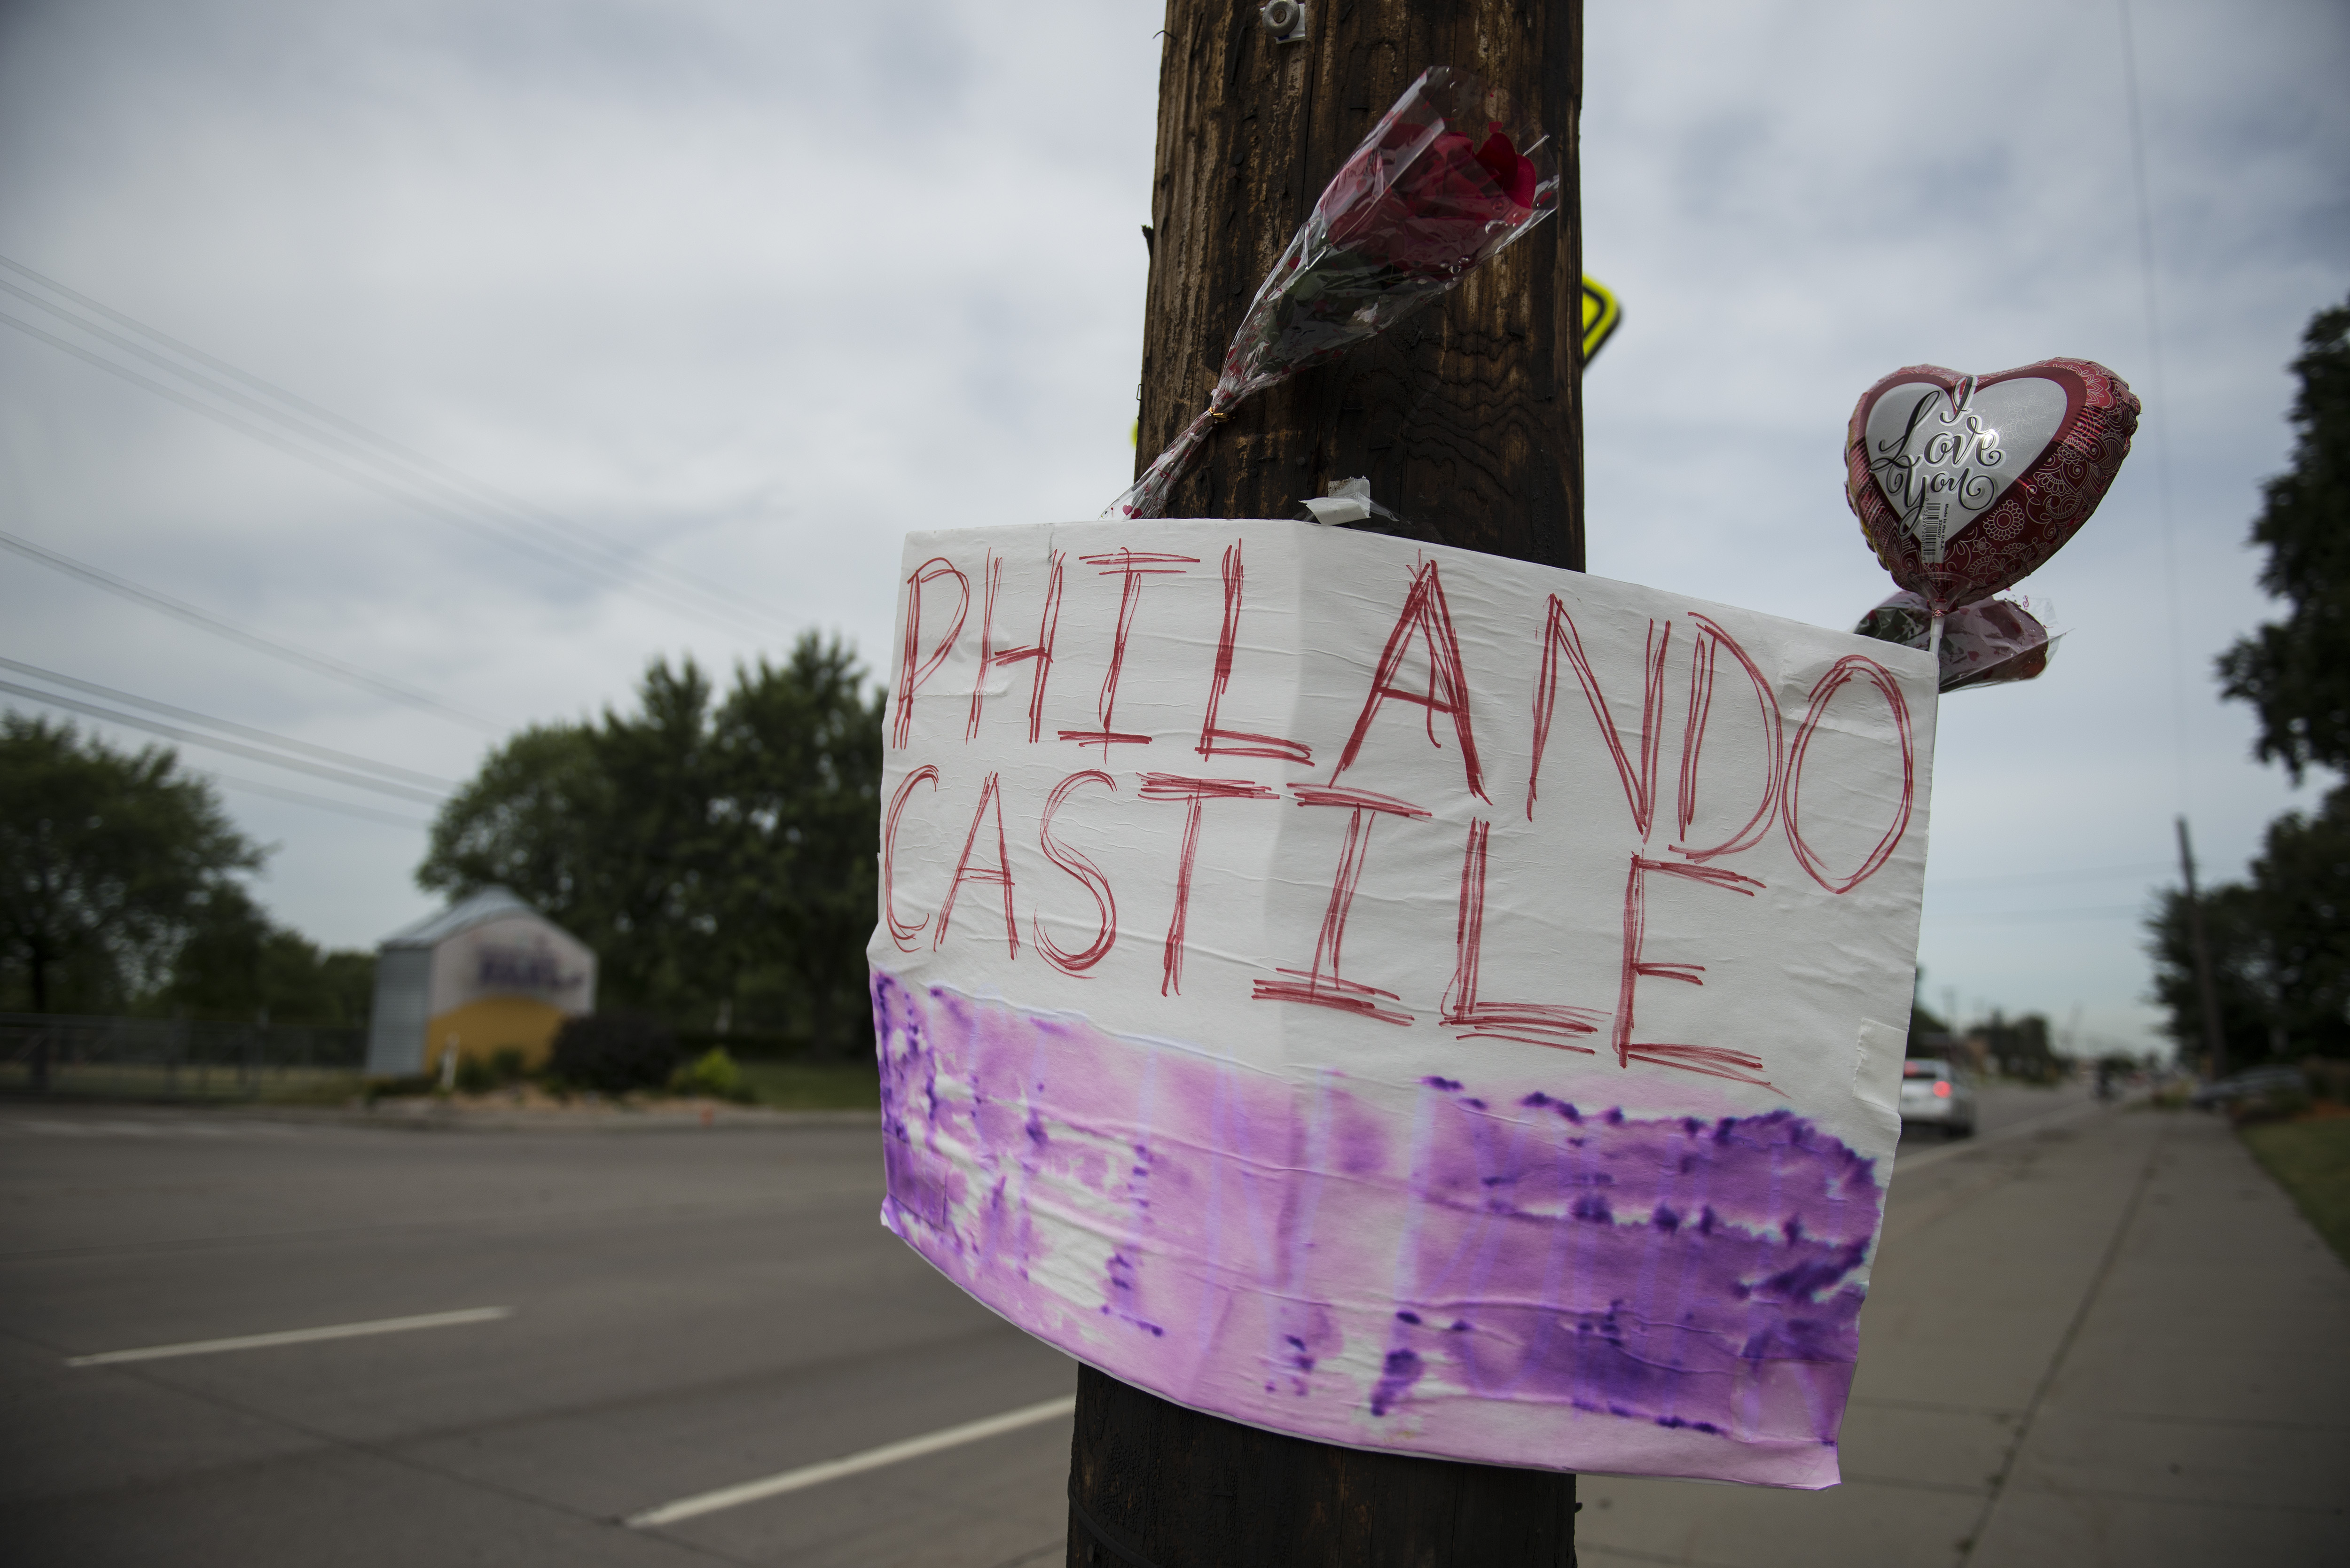 A memorial left for Philando Castile following the police shooting death of a black man on July 7, 2016 in St. Paul, Minnesota. Philando Castile was shot and killed last night, July 6, 2016, by a police officer in Falcon Heights, MN.